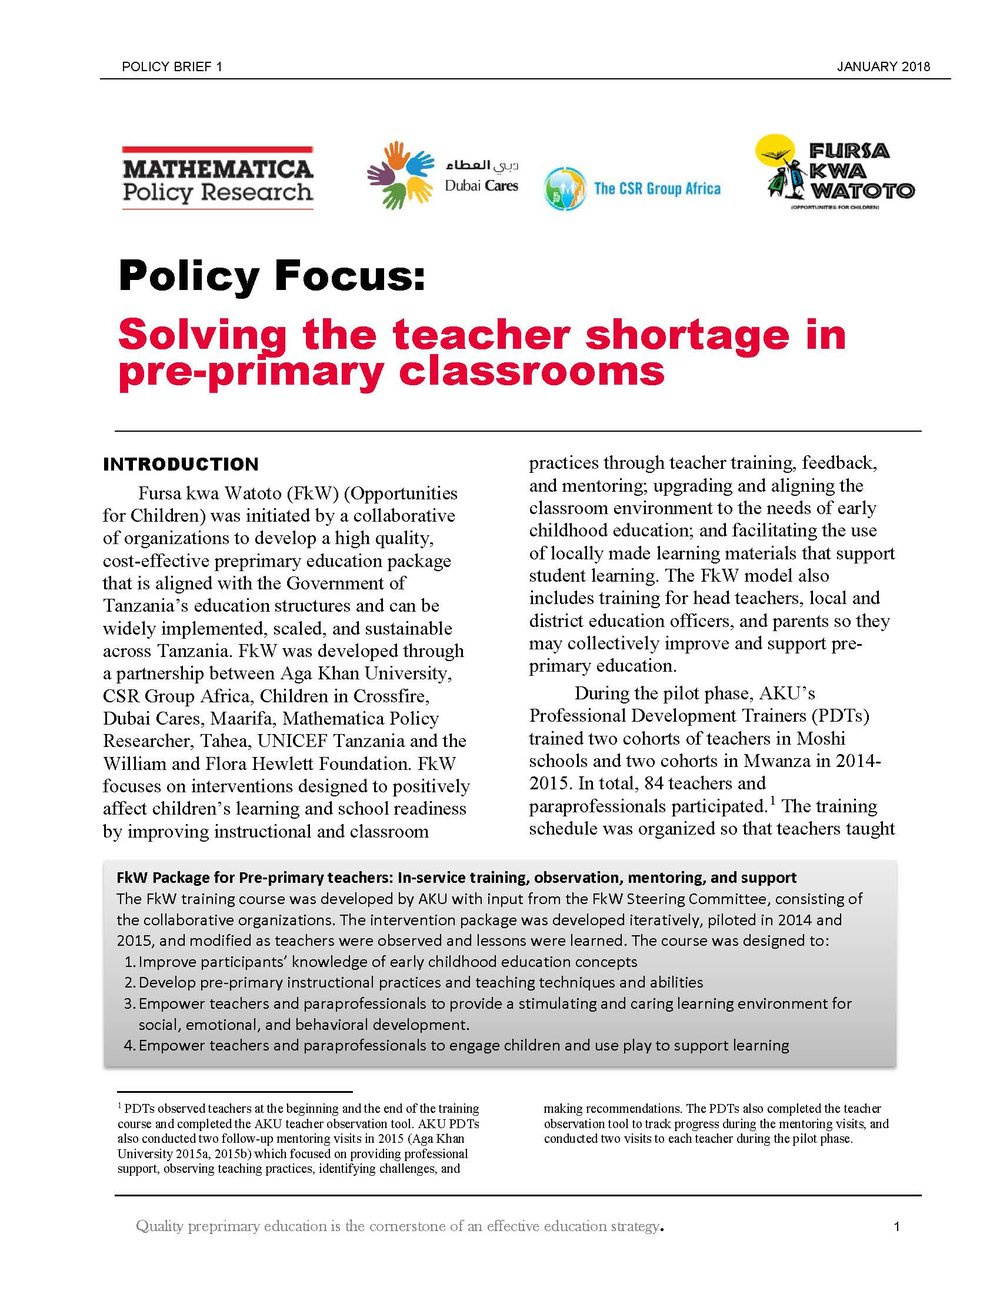 Policy Focus: Solving the Teacher Shortage (Brief)